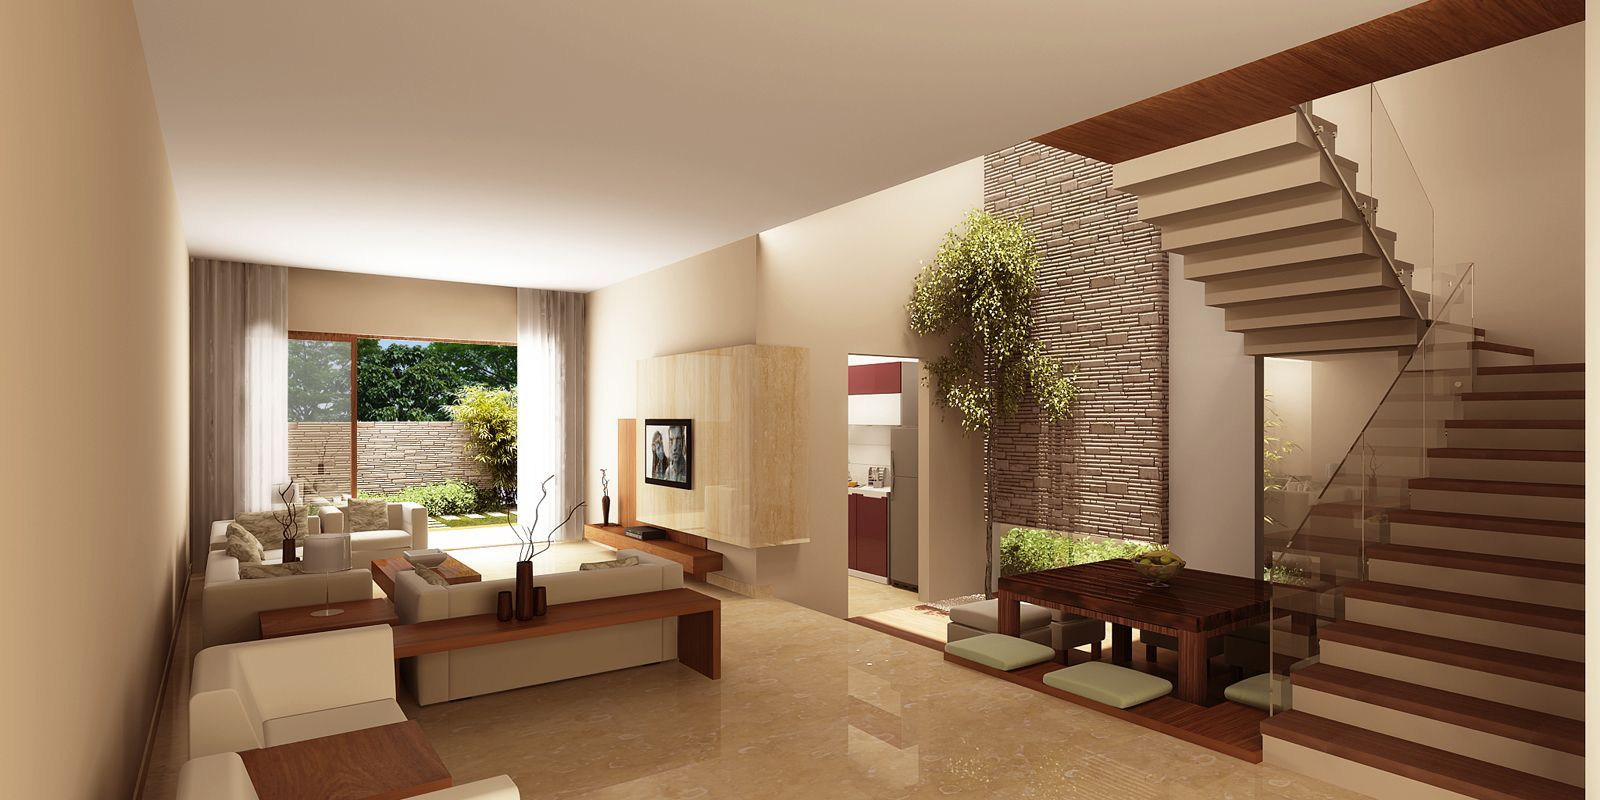 Pin On Quick Saves Home interior design living room